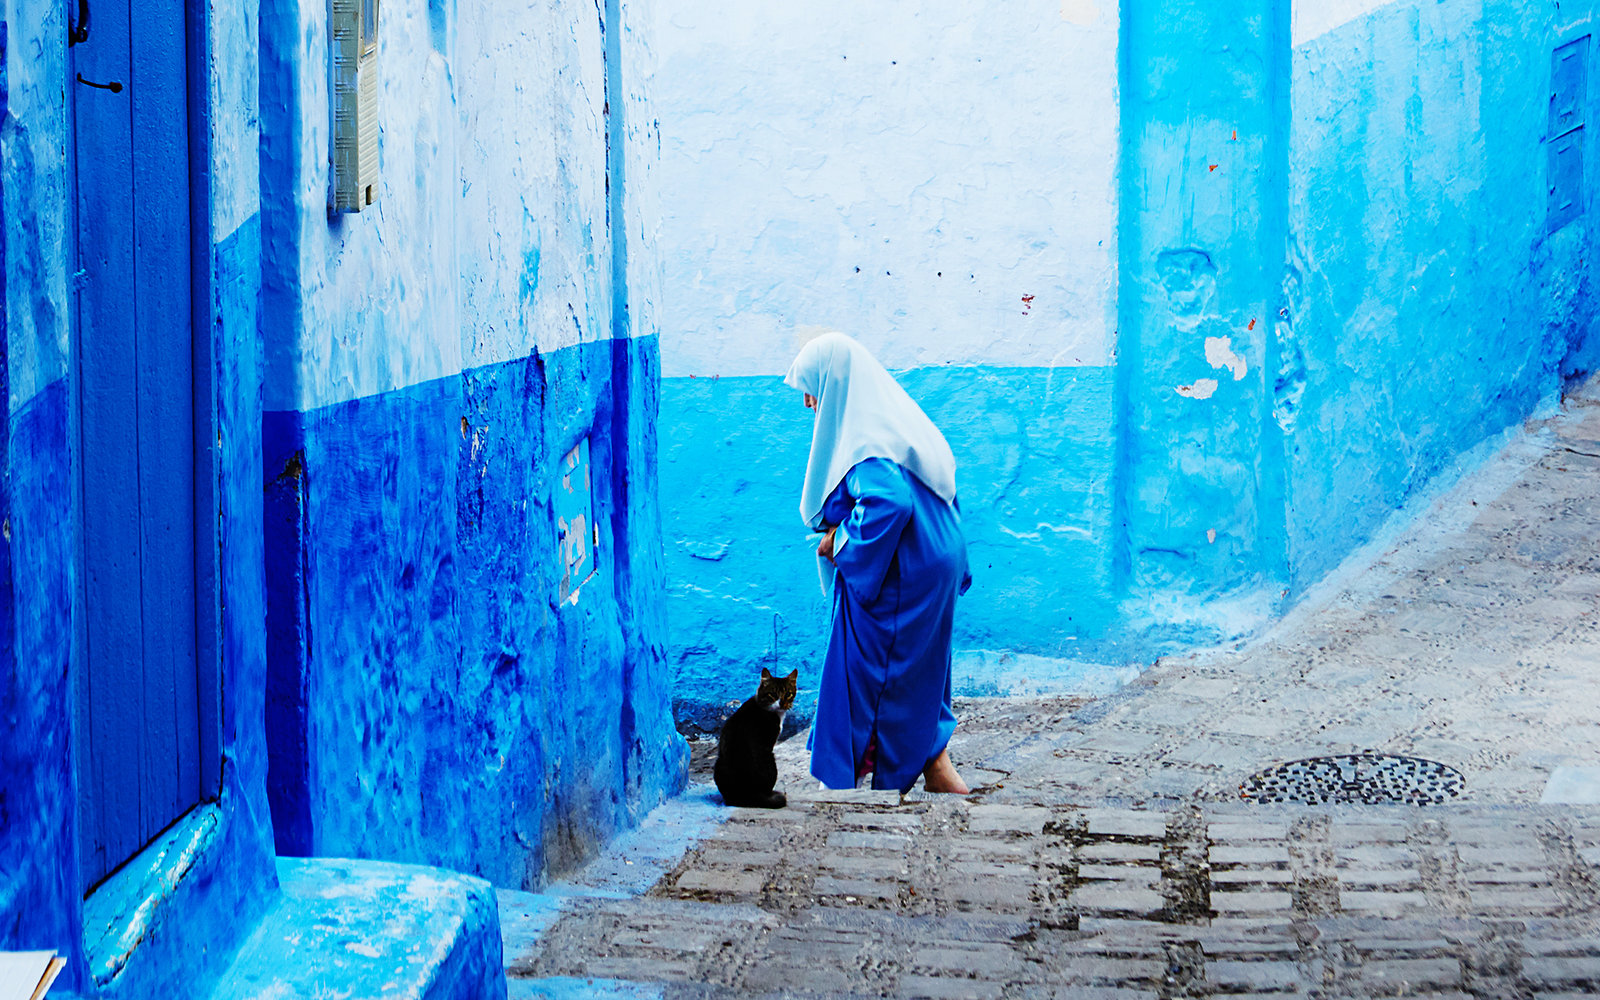 Chefchaouen Street in Morocco